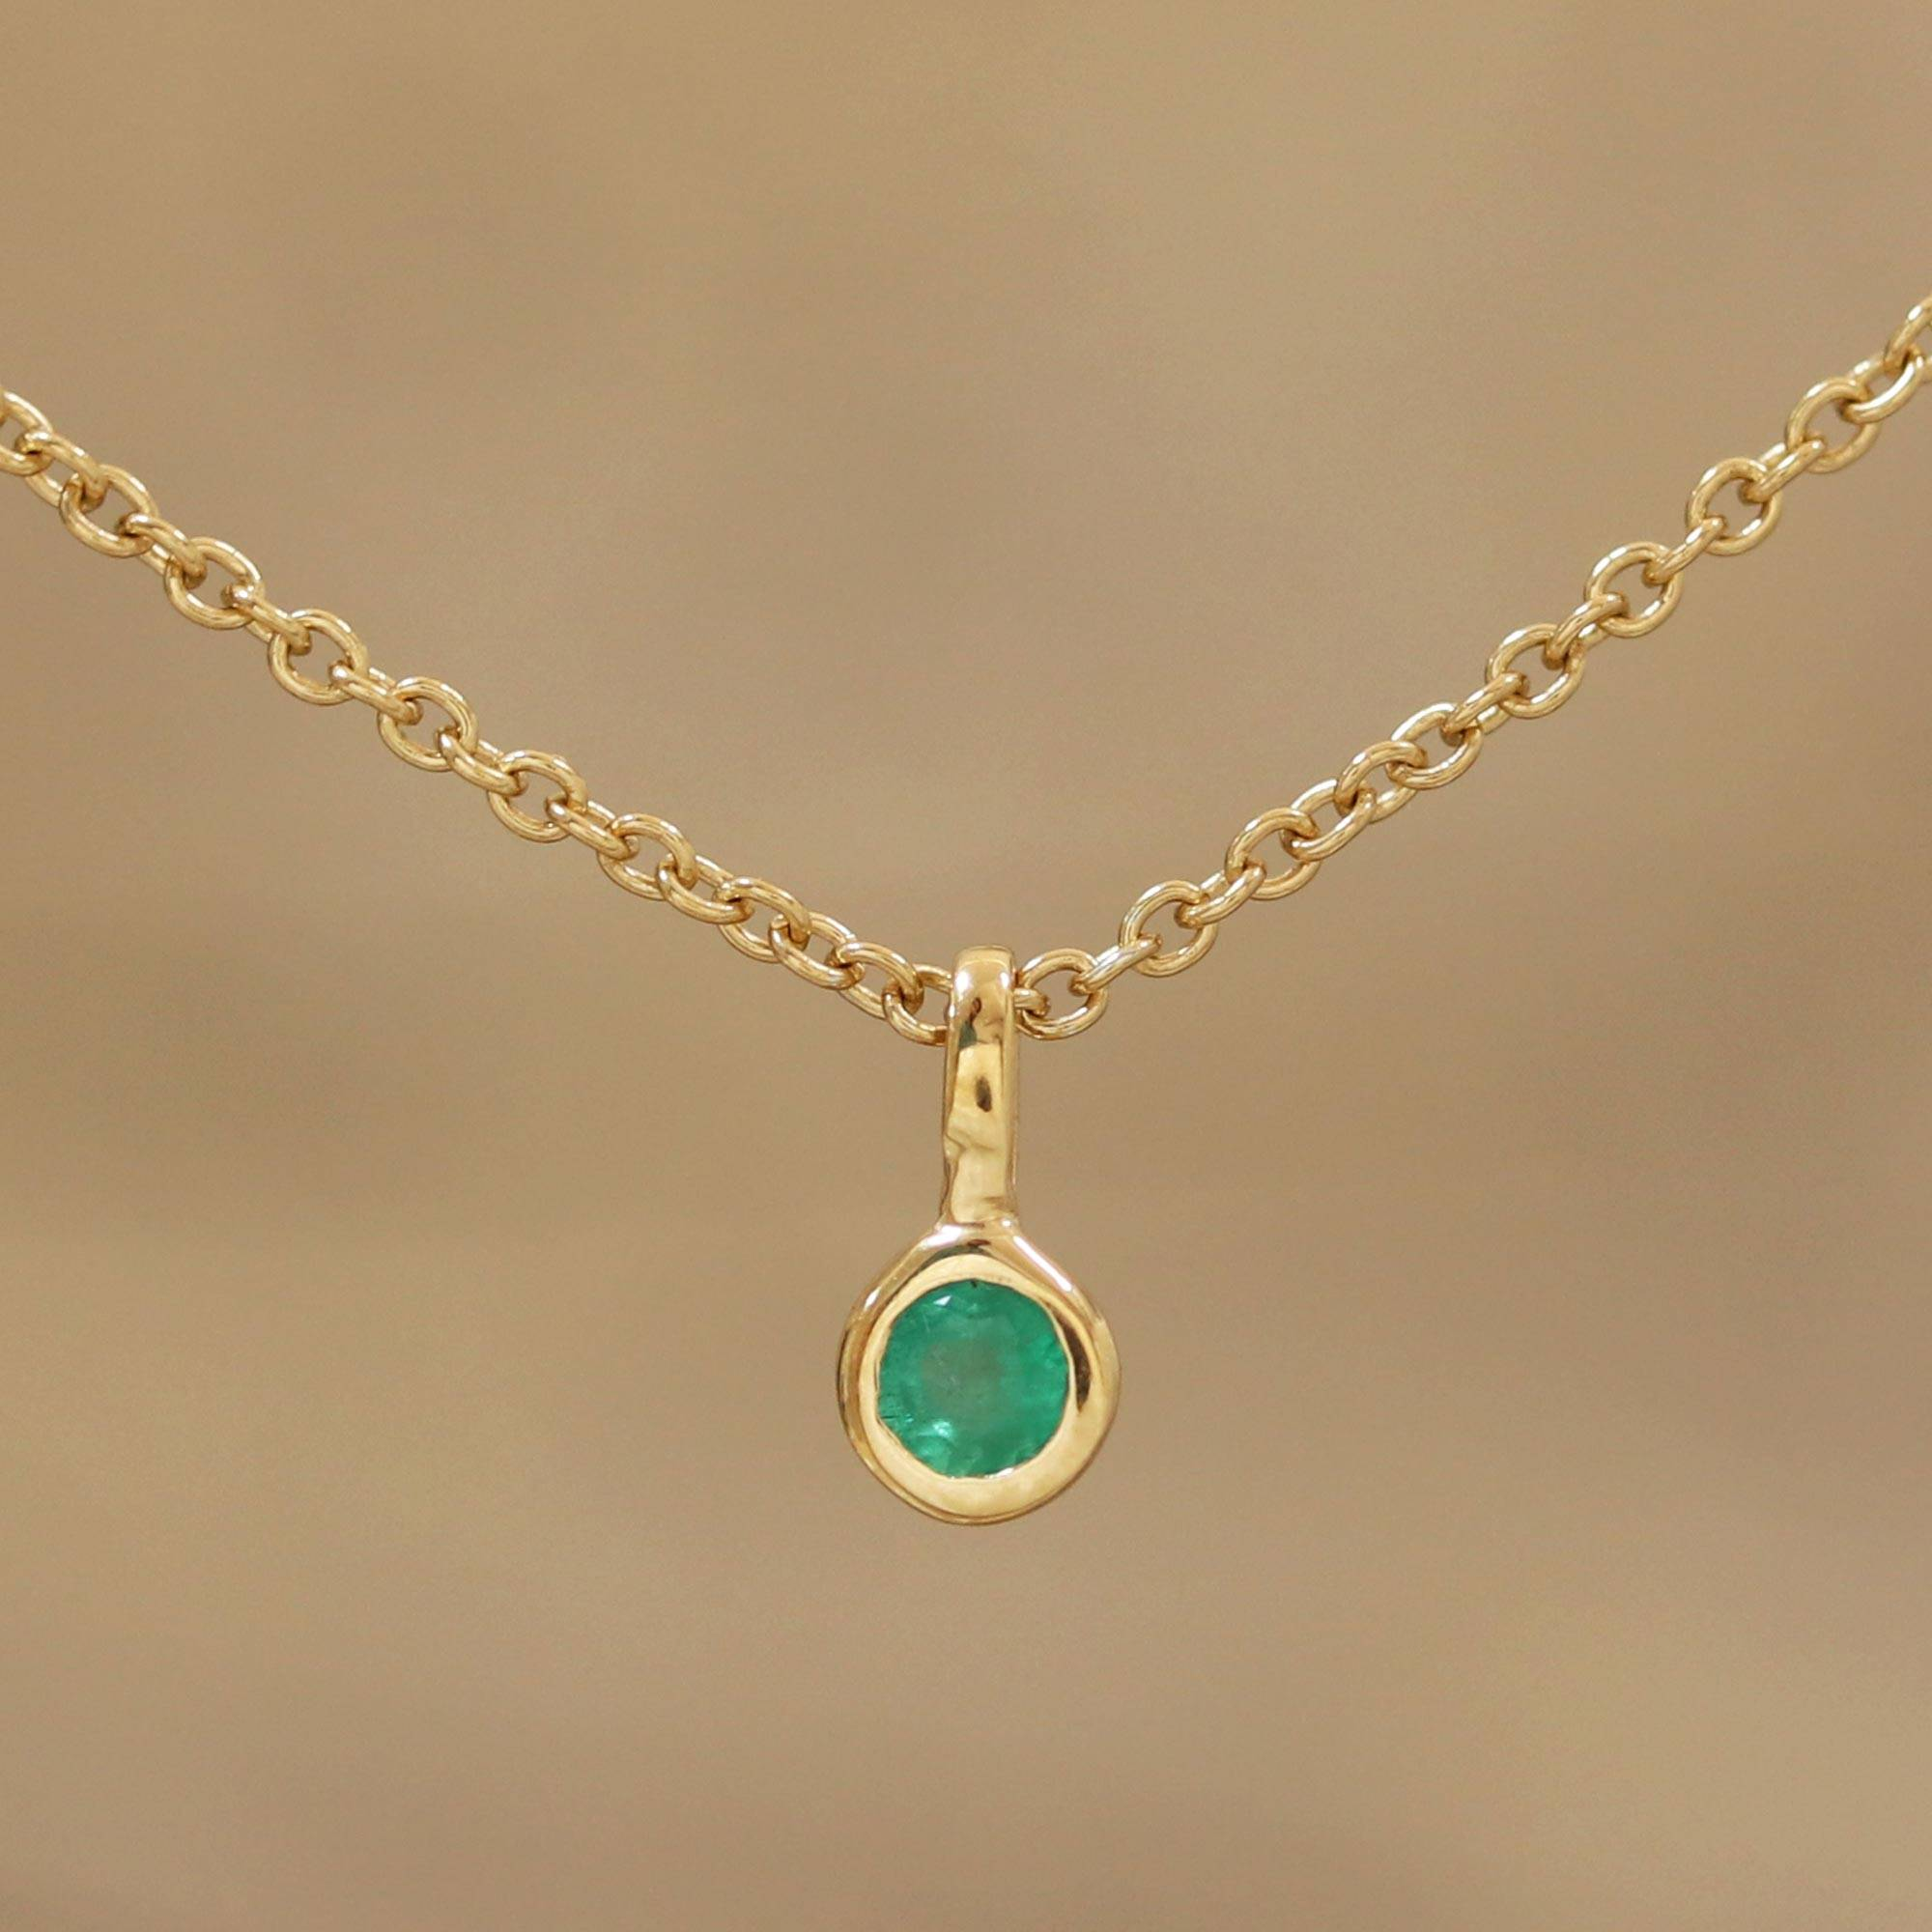 5a078d34b7301e Artisan Crafted Gold Plated Silver and Emerald Necklace,